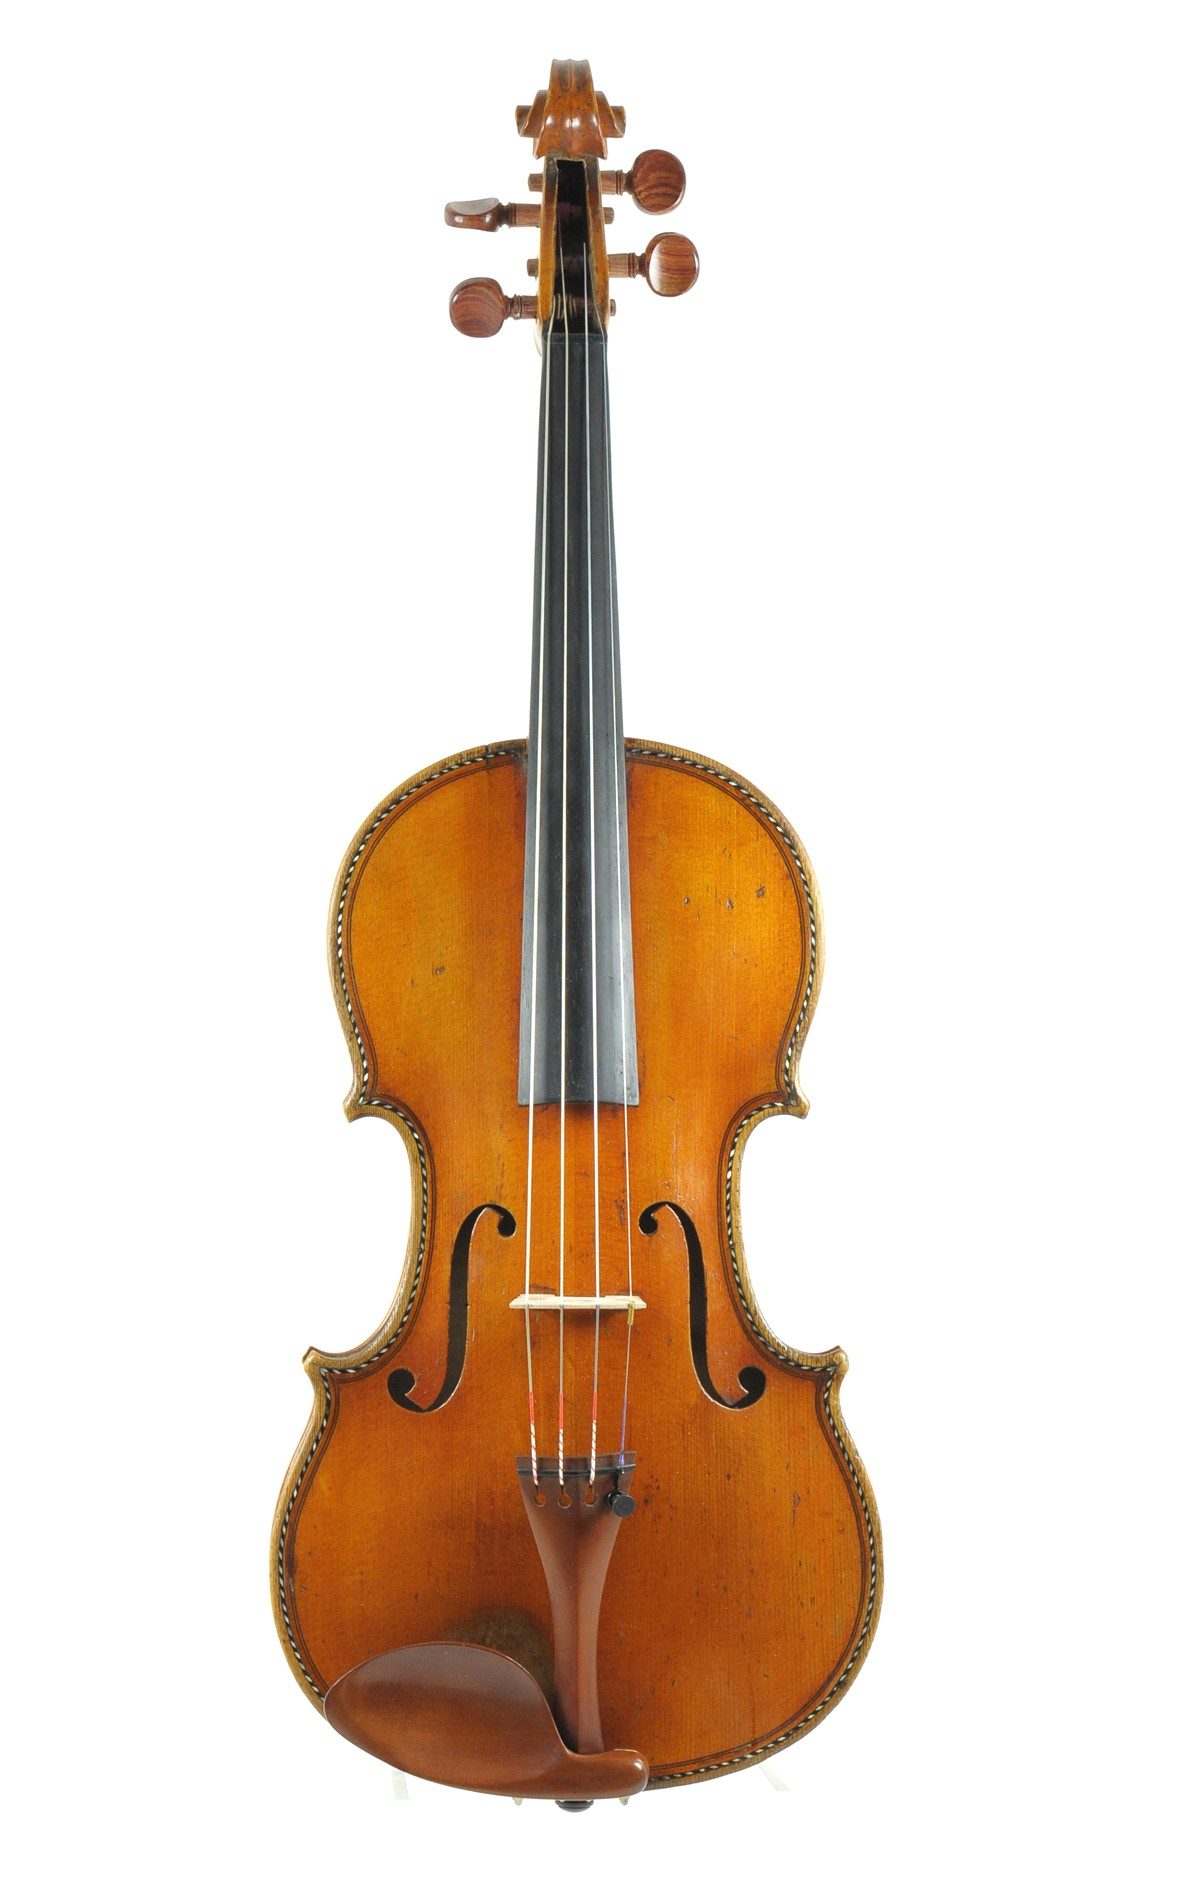 François Alexis Maline, French violin after Hellier Strad